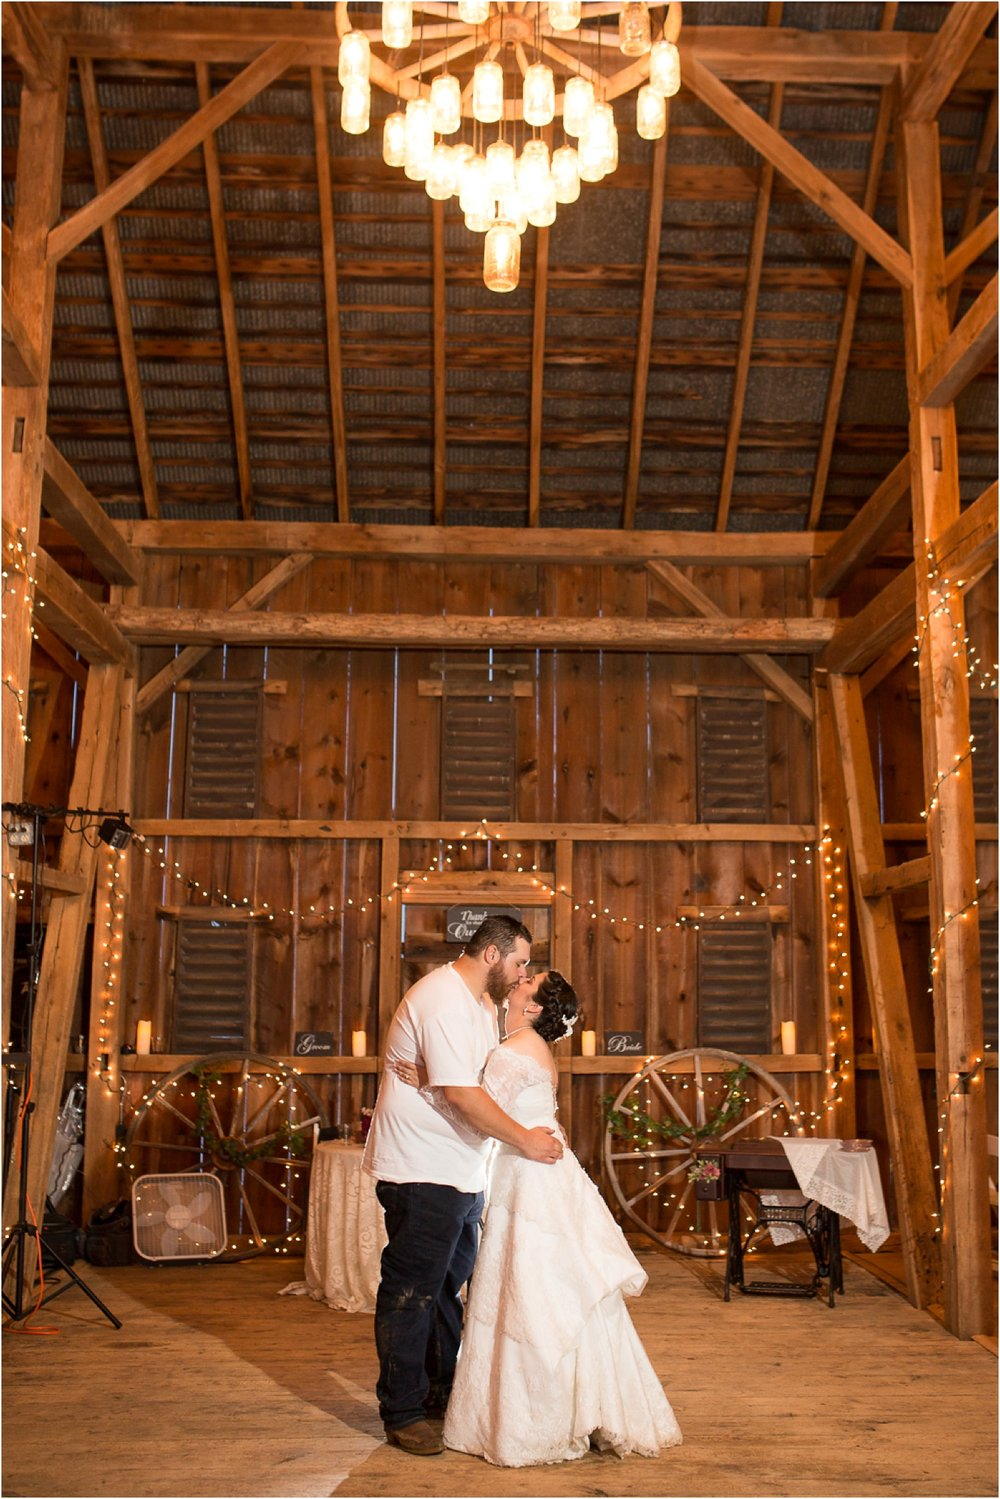 Maryland-Barn-Wedding-Photos-138.jpg